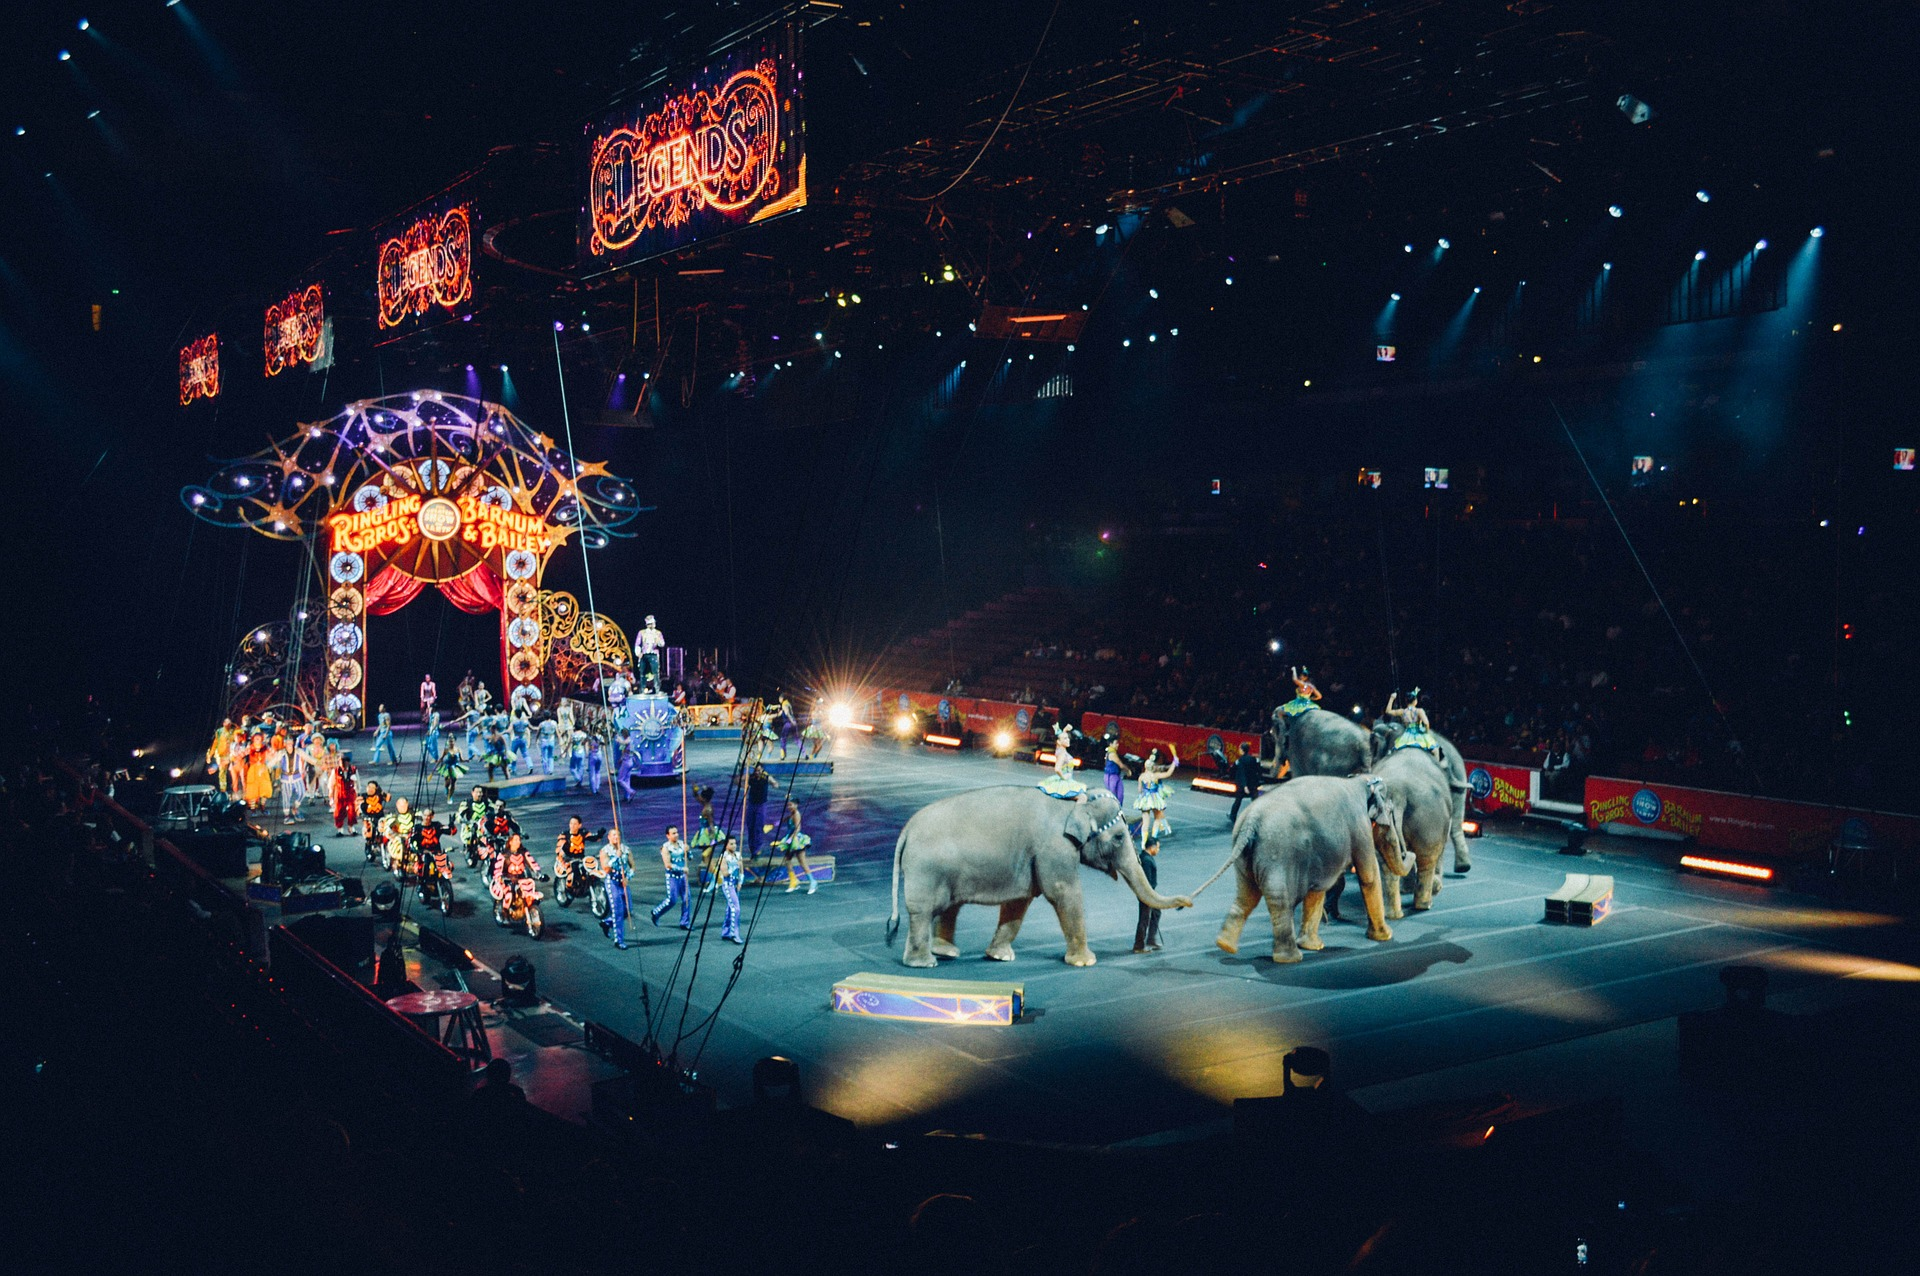 Elephants at the circus.